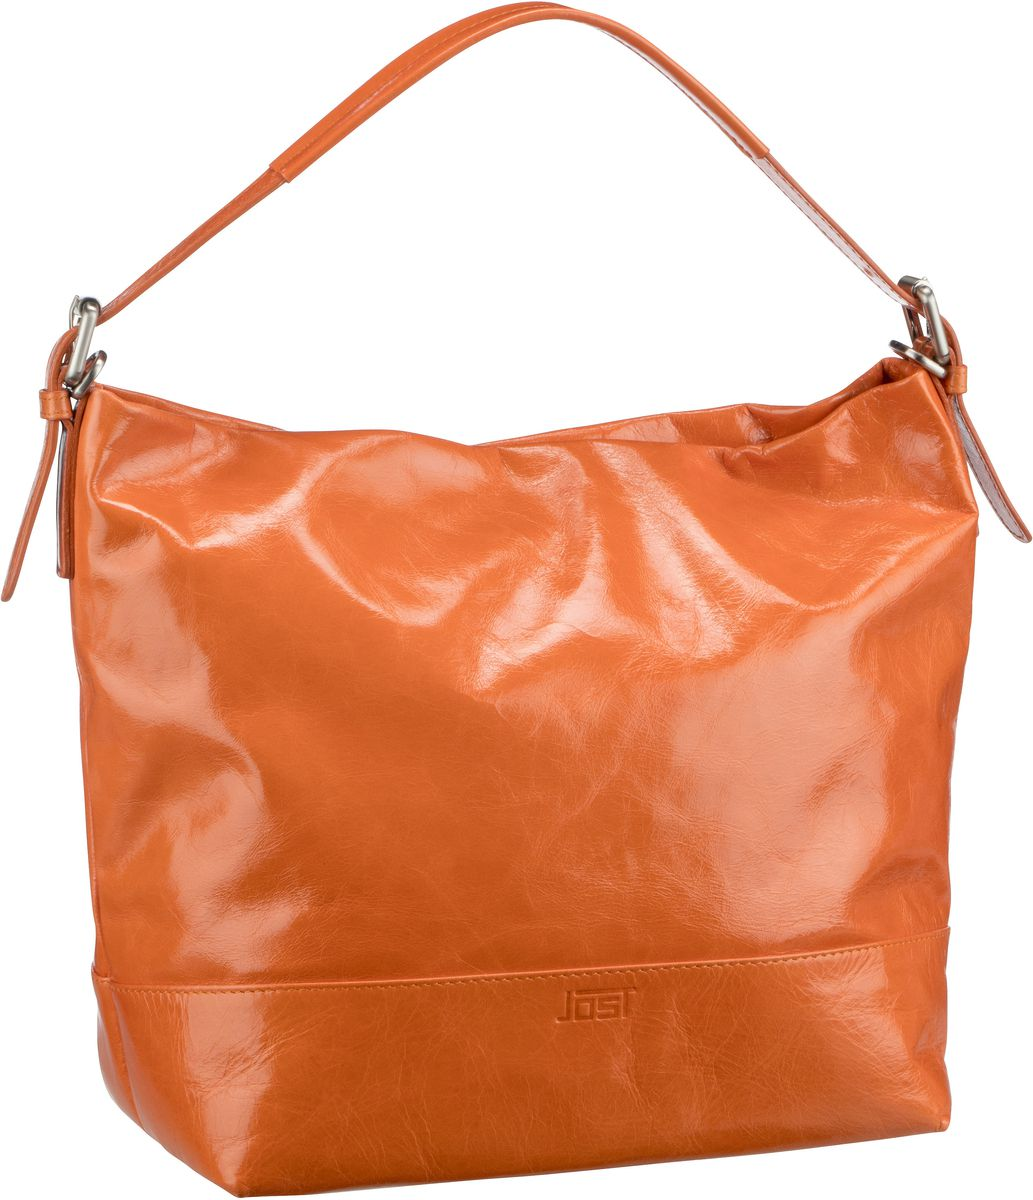 Handtasche Boda 6626 Hobo Bag Orange